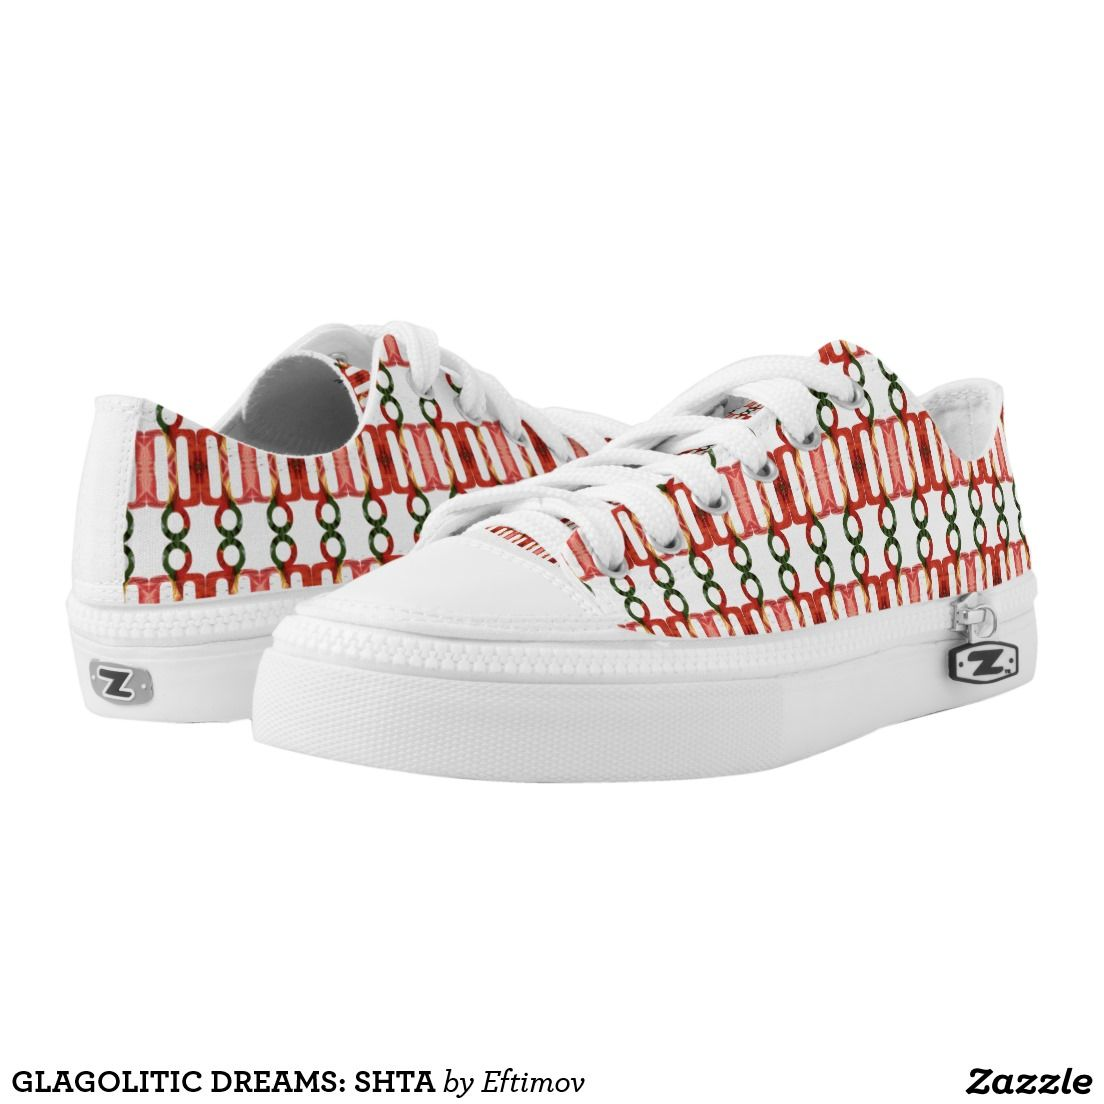 GLAGOLITIC DREAMS: SHTA PRINTED SHOES